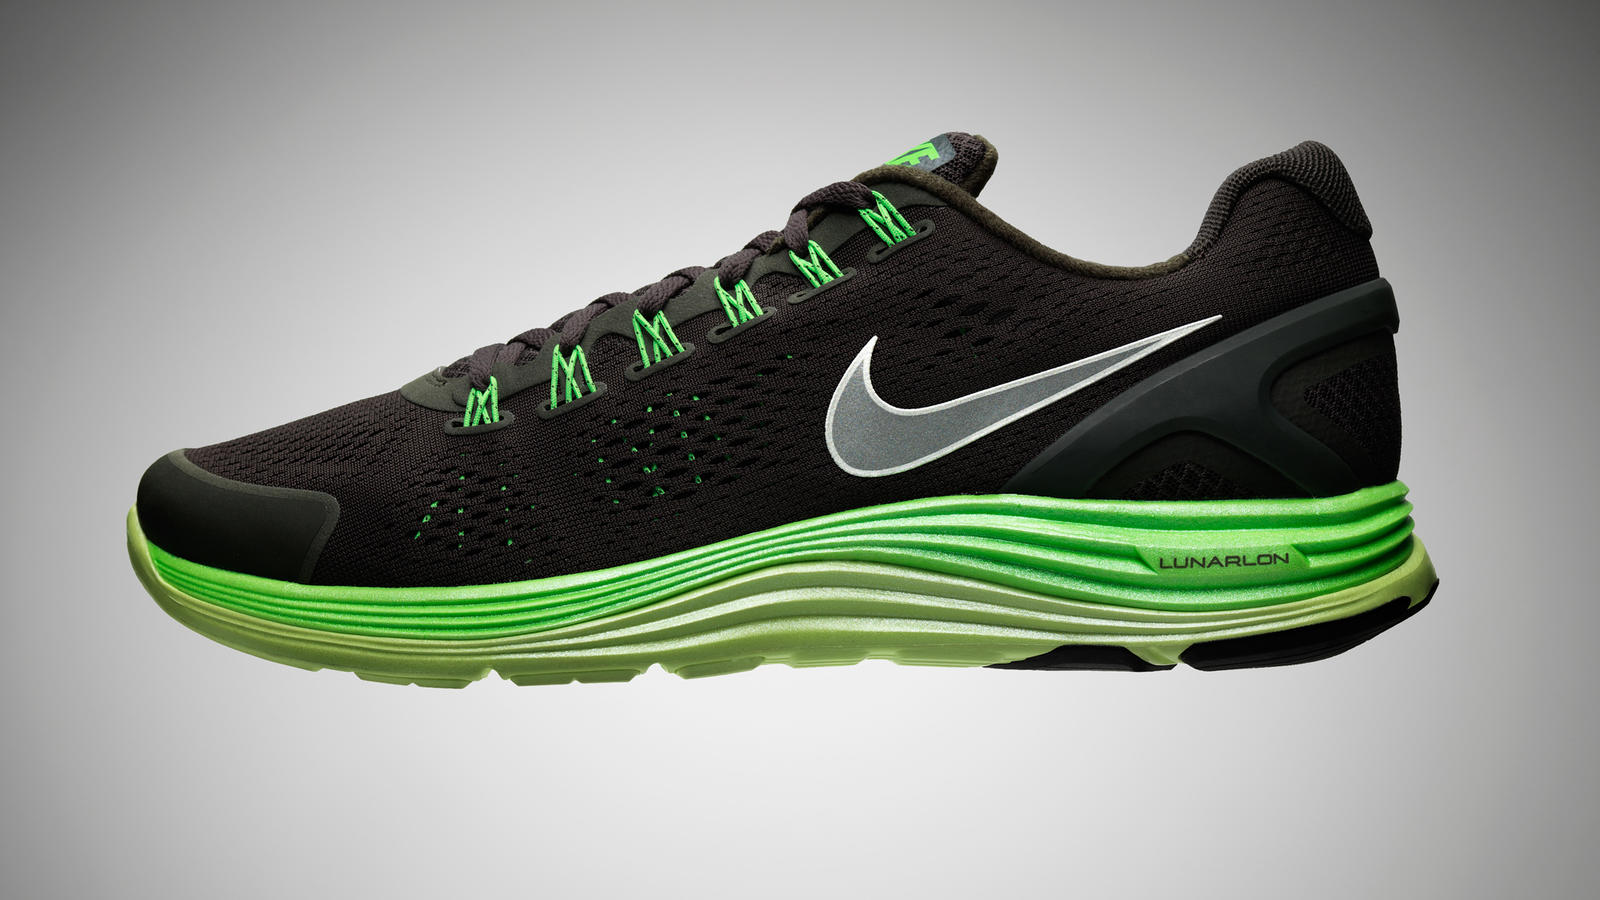 The new LunarGlide+ 4 takes the everyday run to an elite